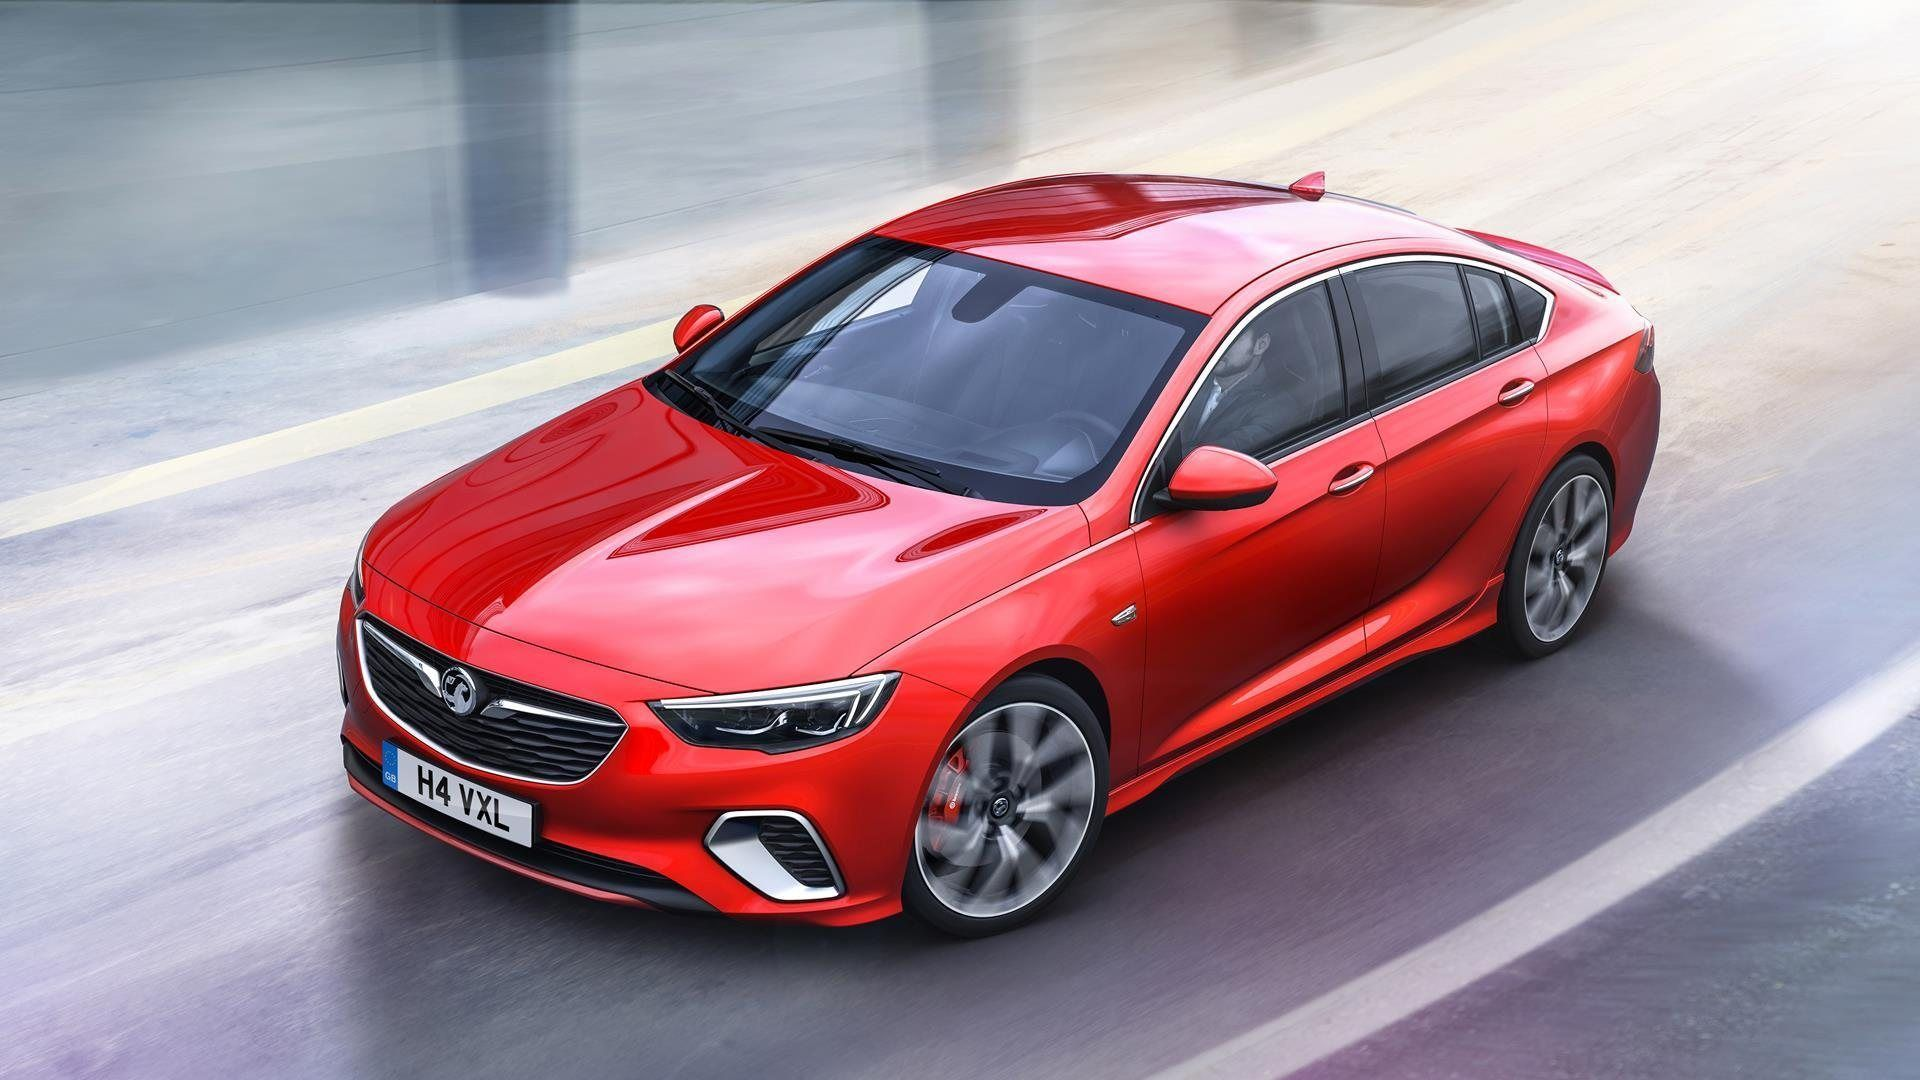 2021 New Opel Insignia Release in 2020 | Vauxhall insignia ...